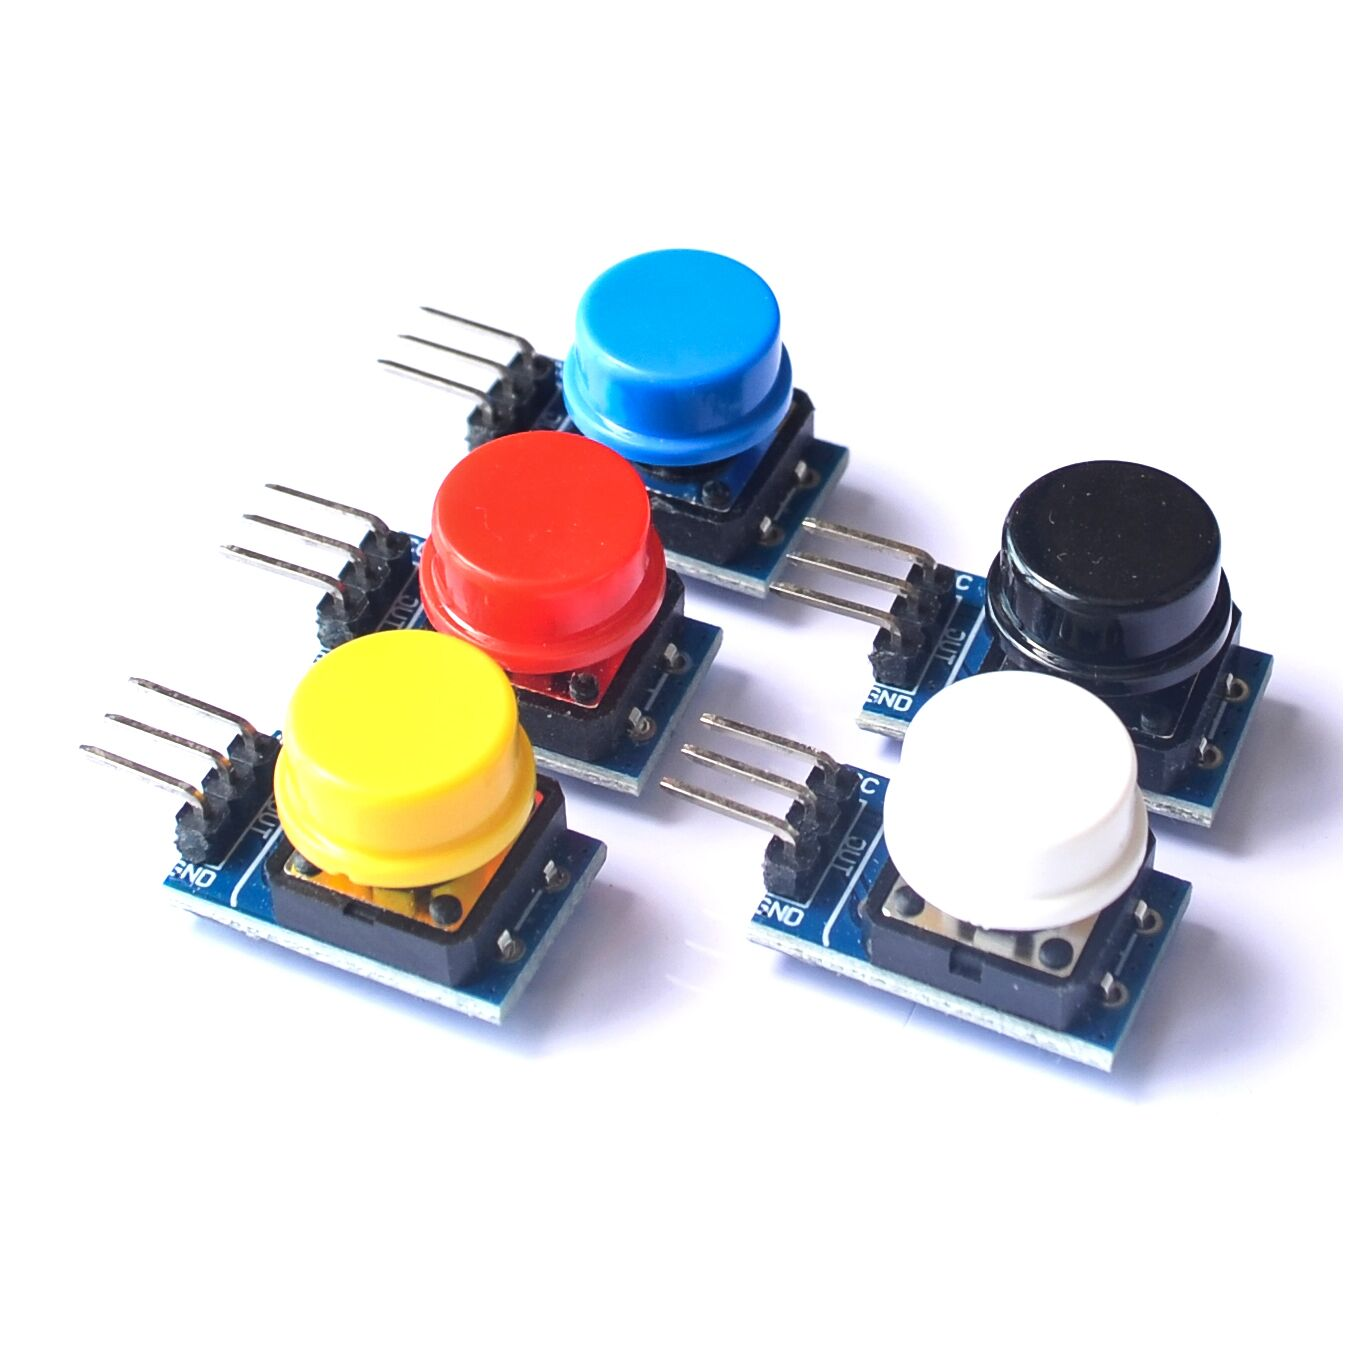 5pcs-12x12mm-big-key-module-big-button-module-light-touch-switch-module-with-hat-high-level-output-for-font-b-arduino-b-font-or-raspberry-pi-3